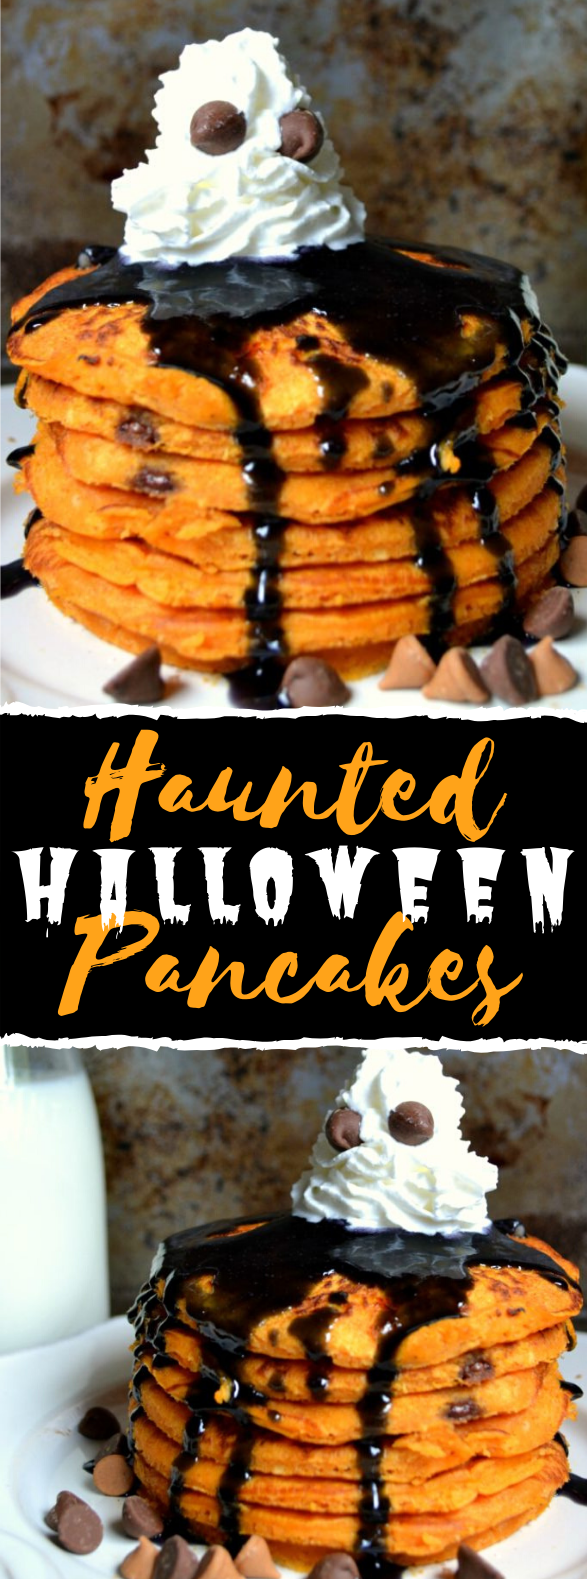 HAUNTED HALLOWEEN PANCAKES #desserts #breakfast